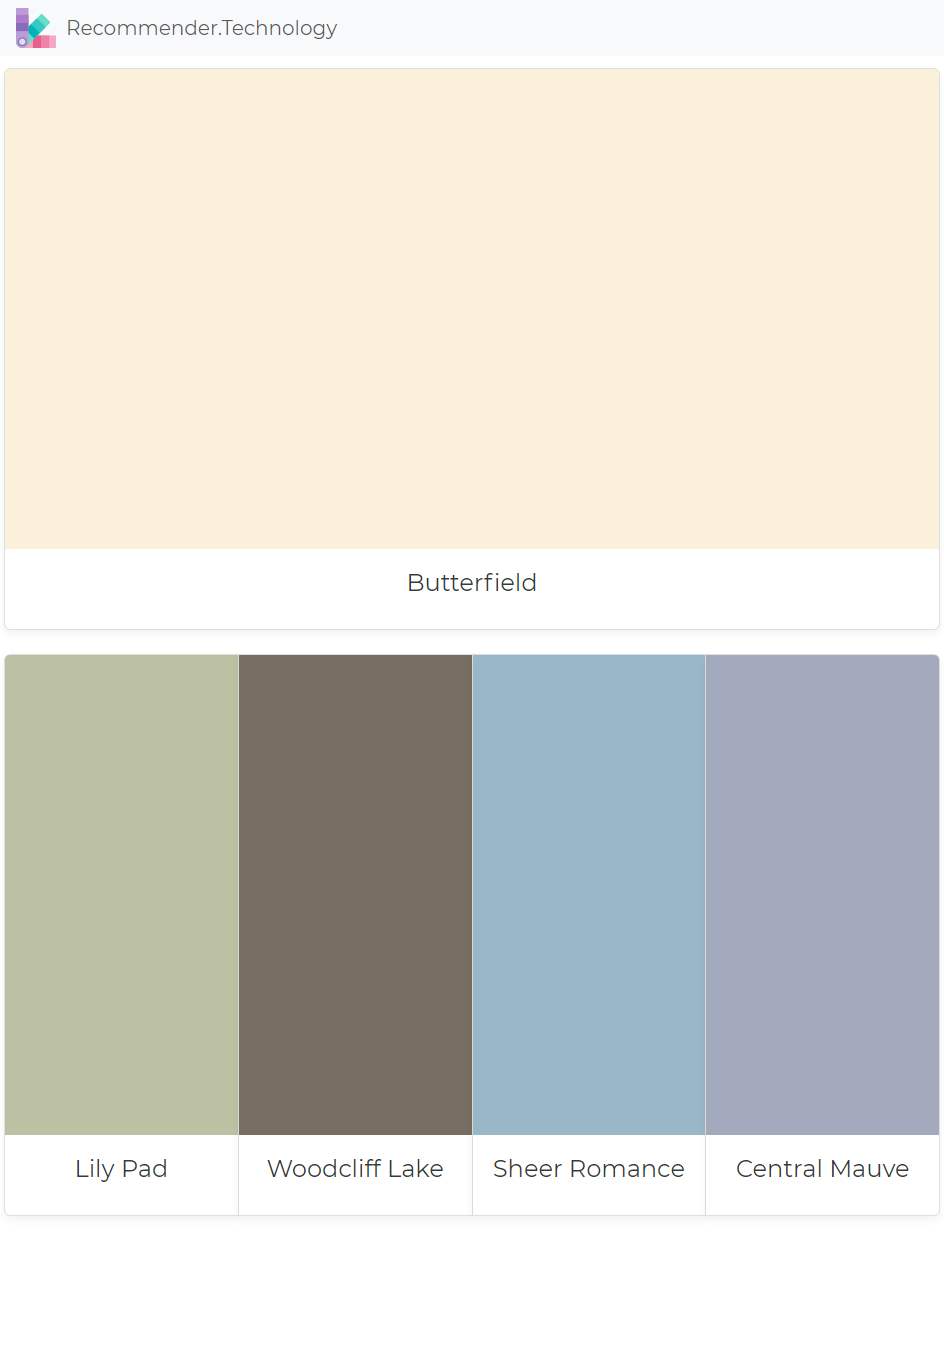 Butterfield: Lily Pad, Woodcliff Lake, Sheer Romance, Central Mauve ...